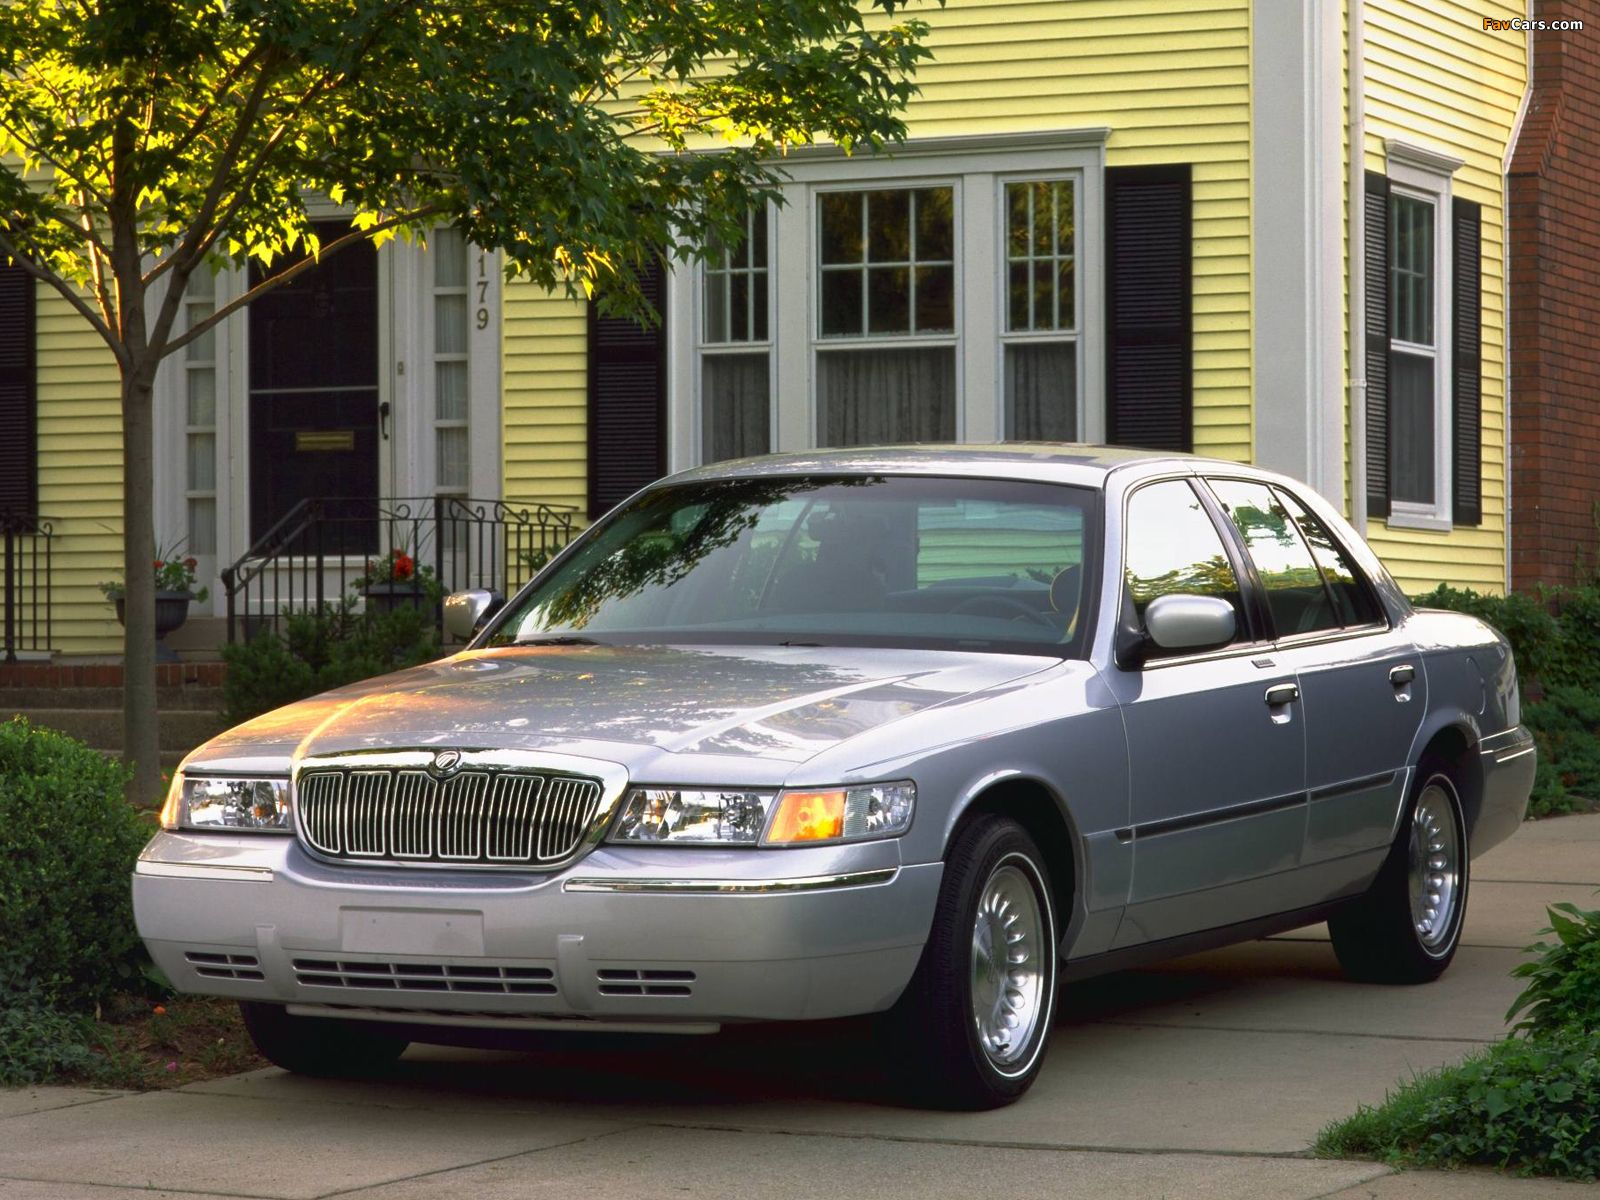 1998 Mercury  Wallpapers of Mercury Grand Marquis 19982003 1600